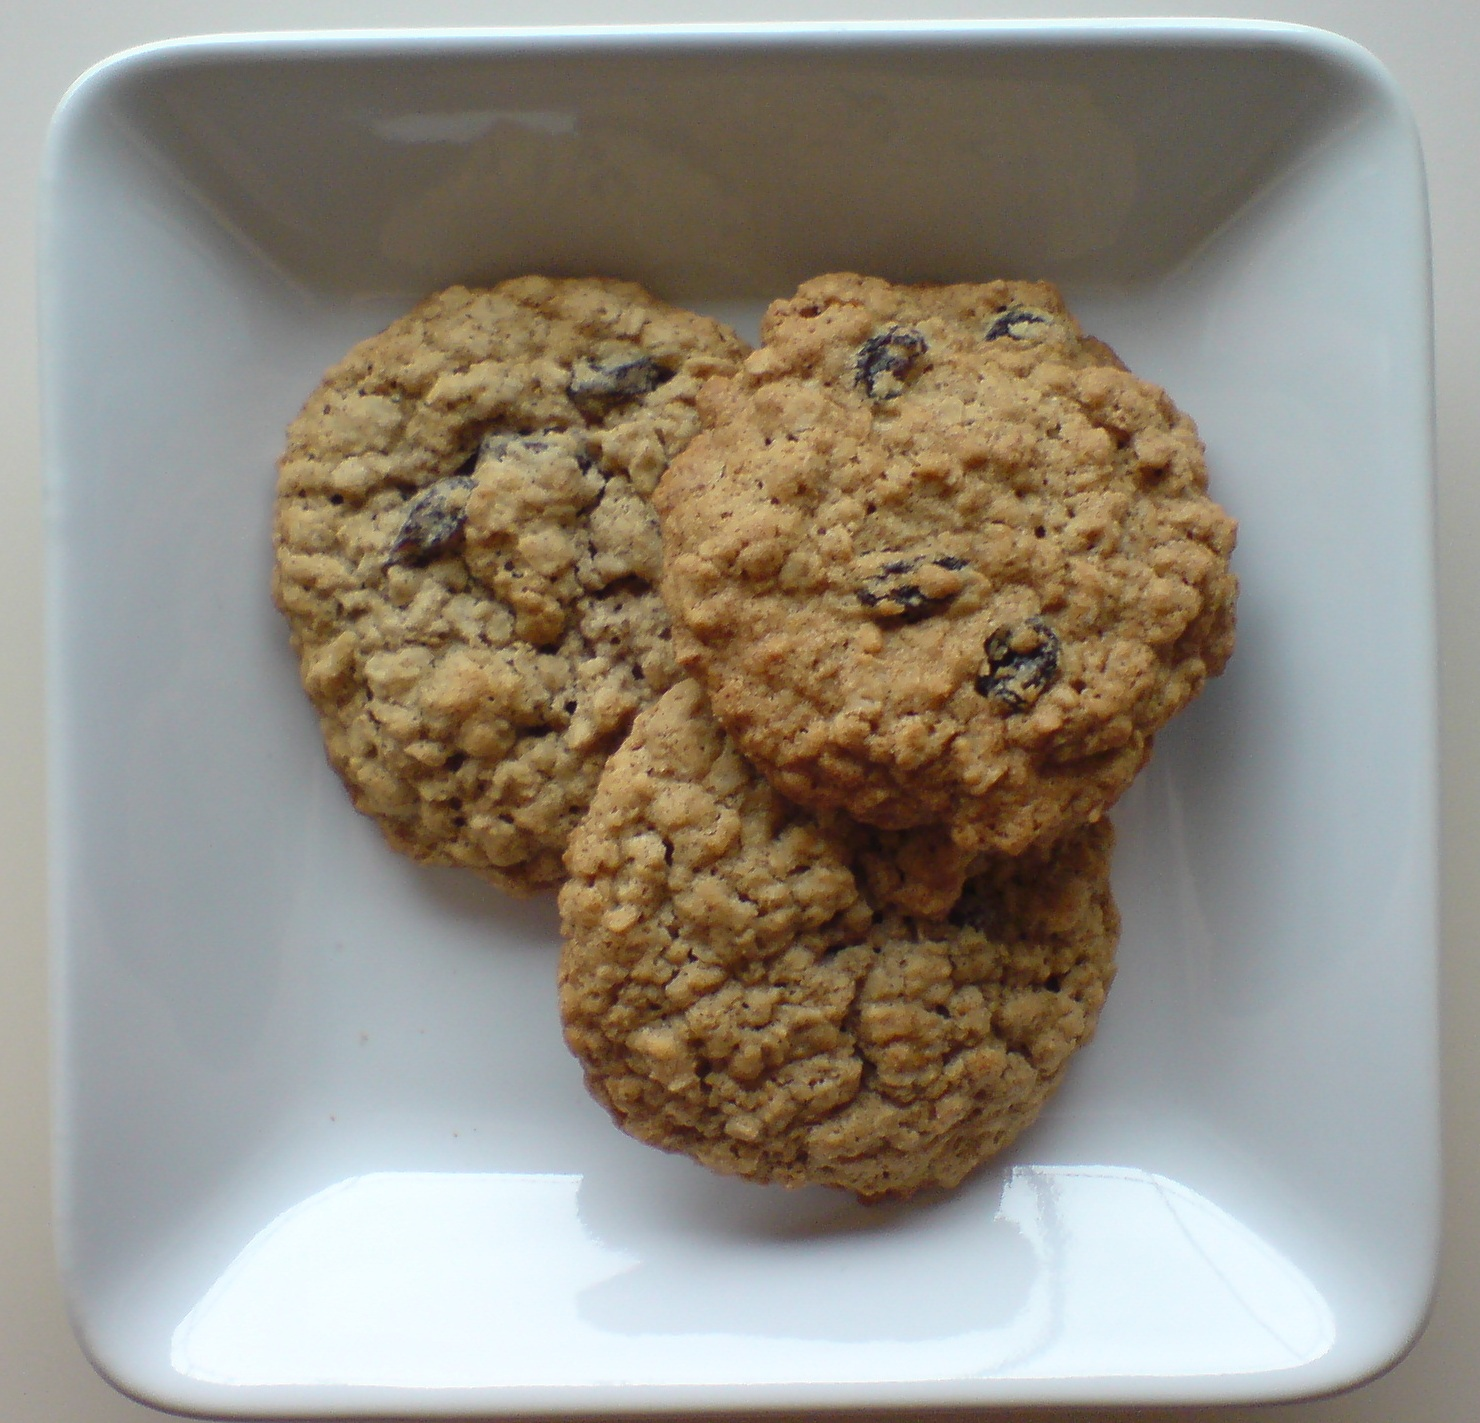 Team EtsyBABY©: Oatmeal Raisin Cookies